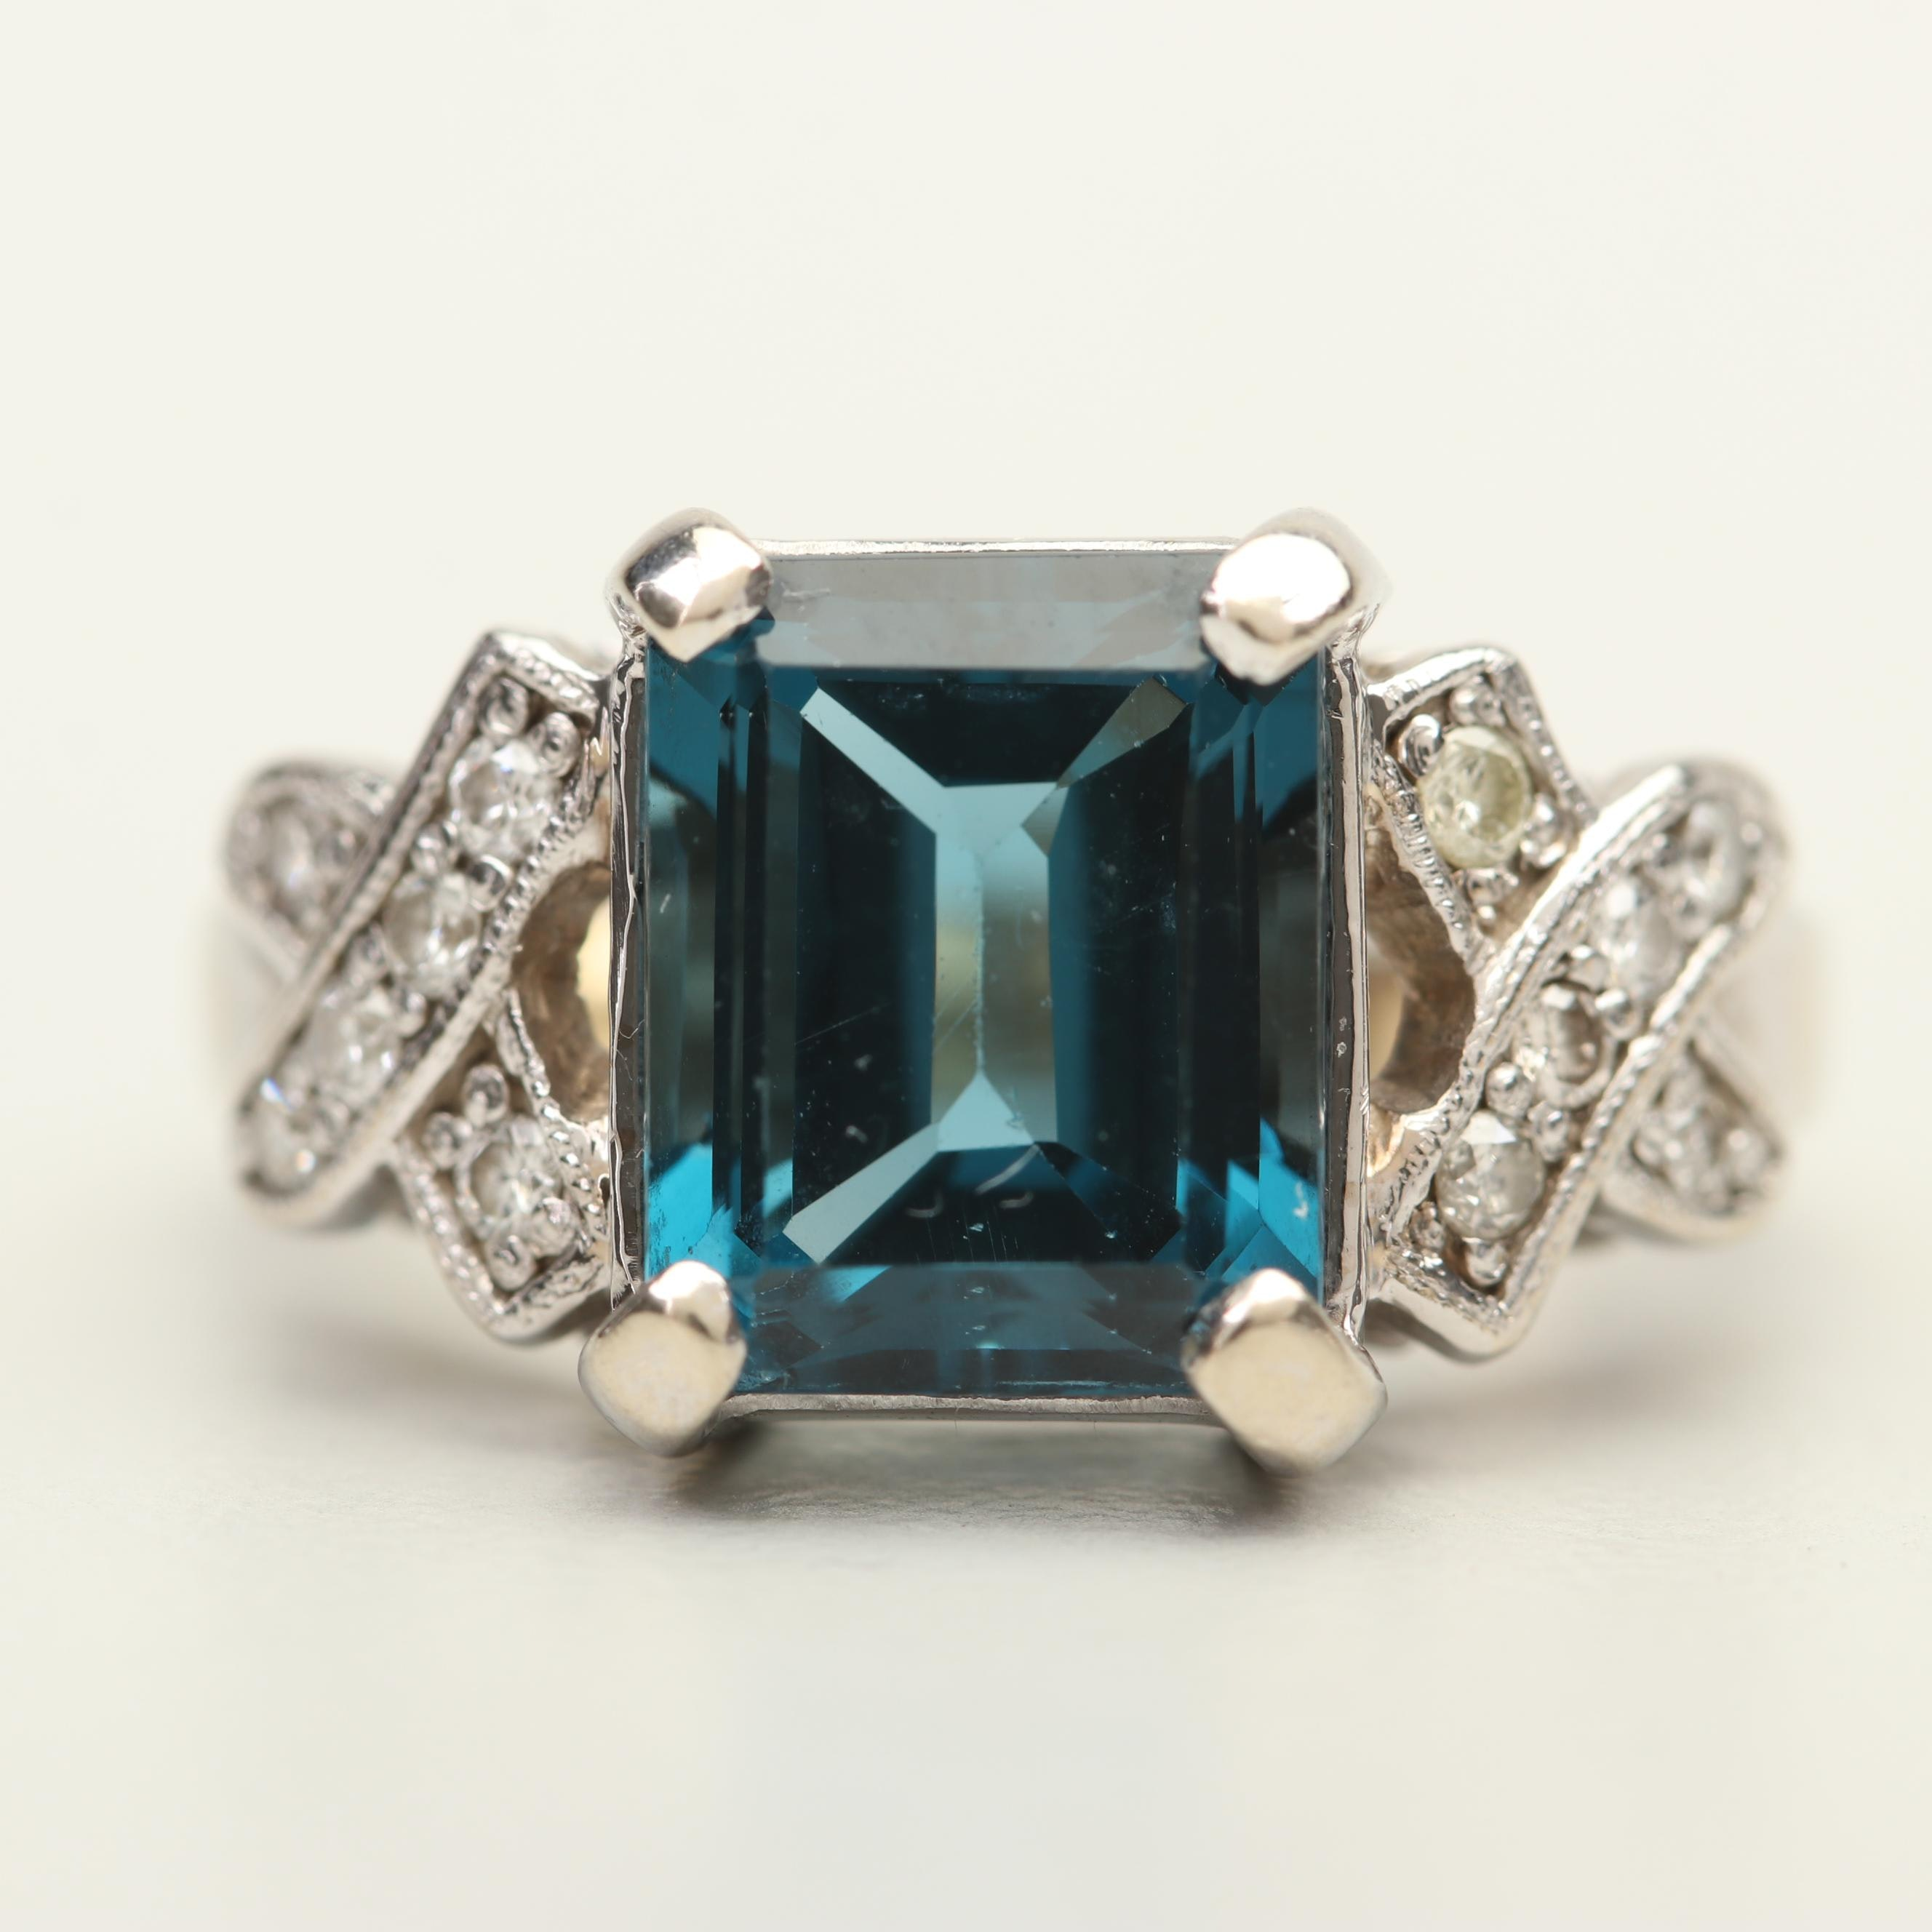 14K White Gold 4.50 CT Topaz and Diamond Ring